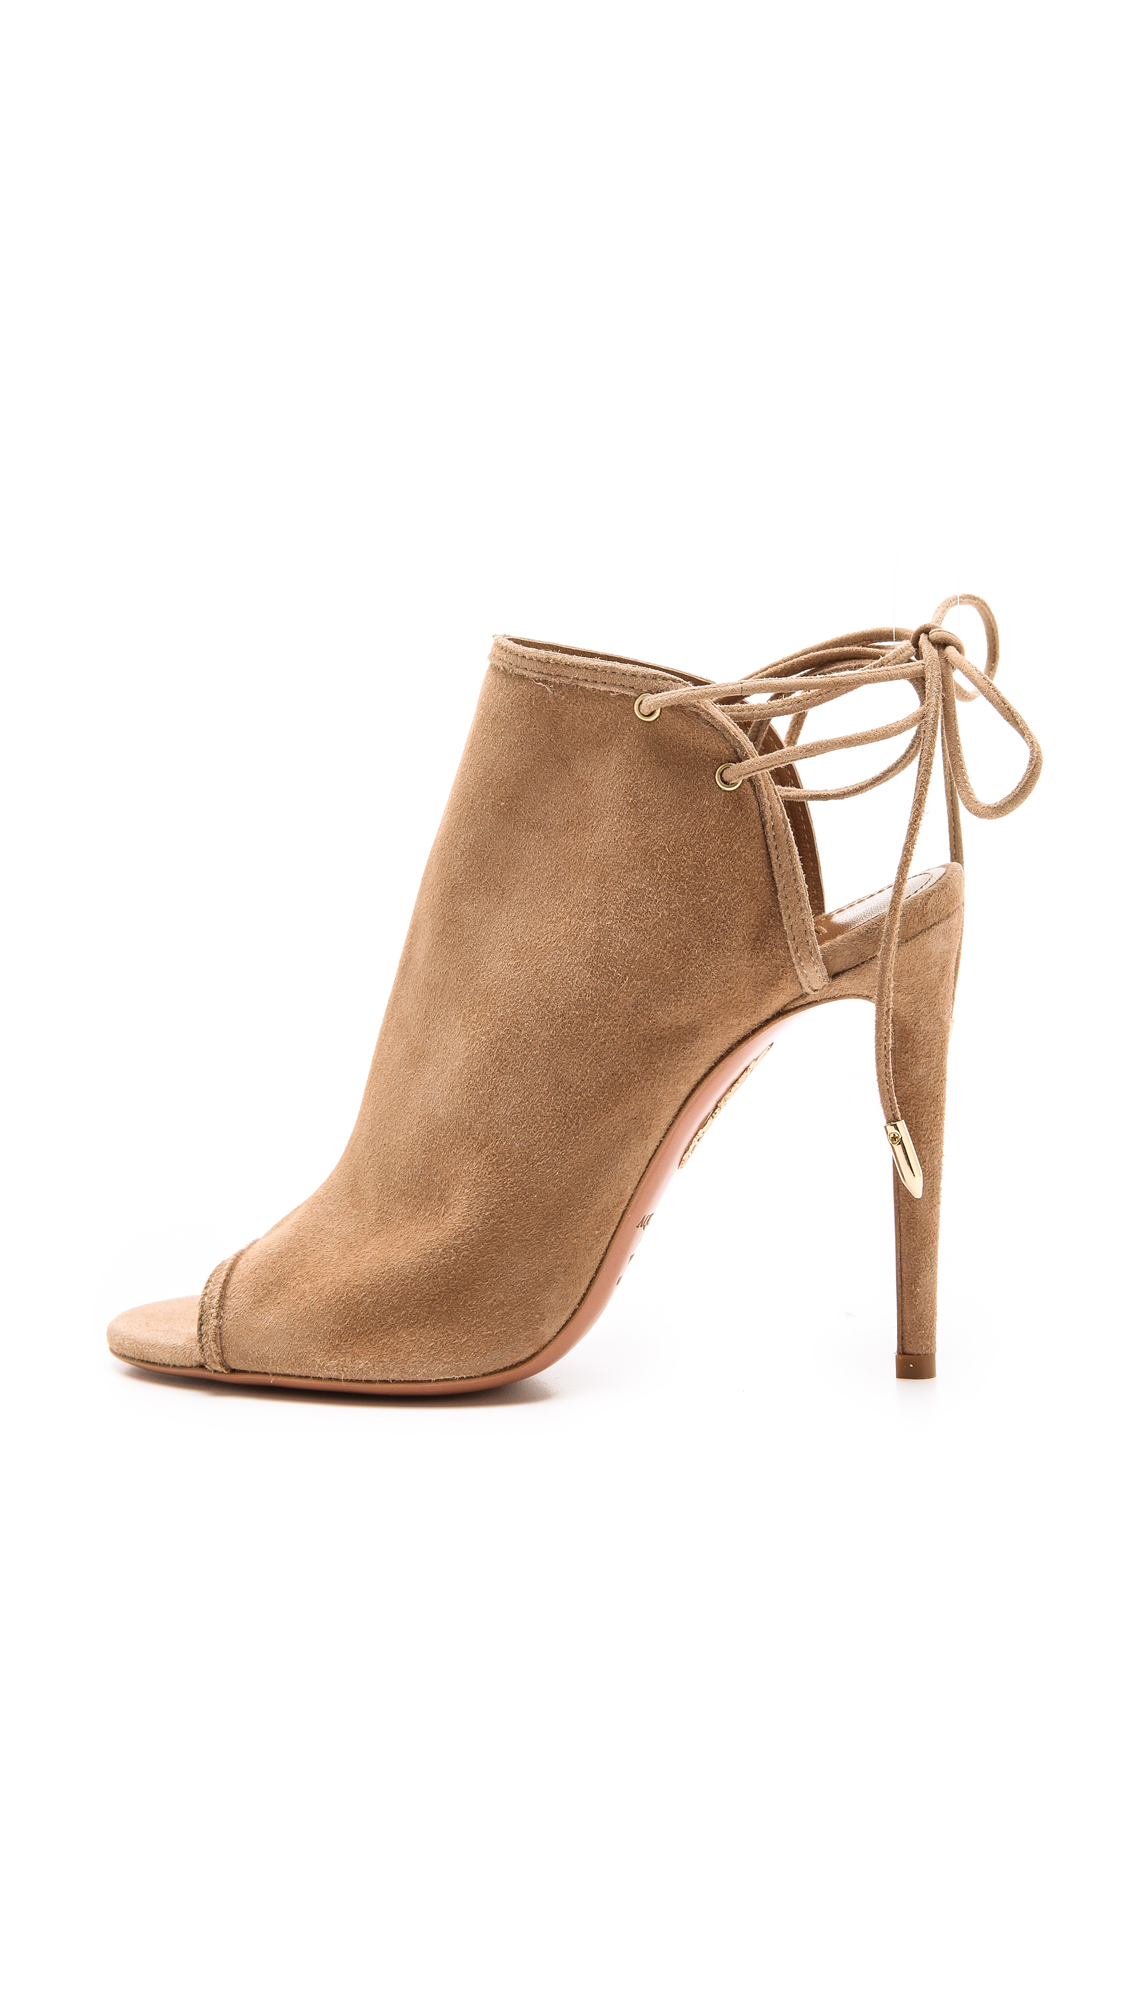 Aquazzura Mayfair Peep-Toe Sandals find great cheap online very cheap price cheap sale collections sale discount in China ElLkIV3EtM